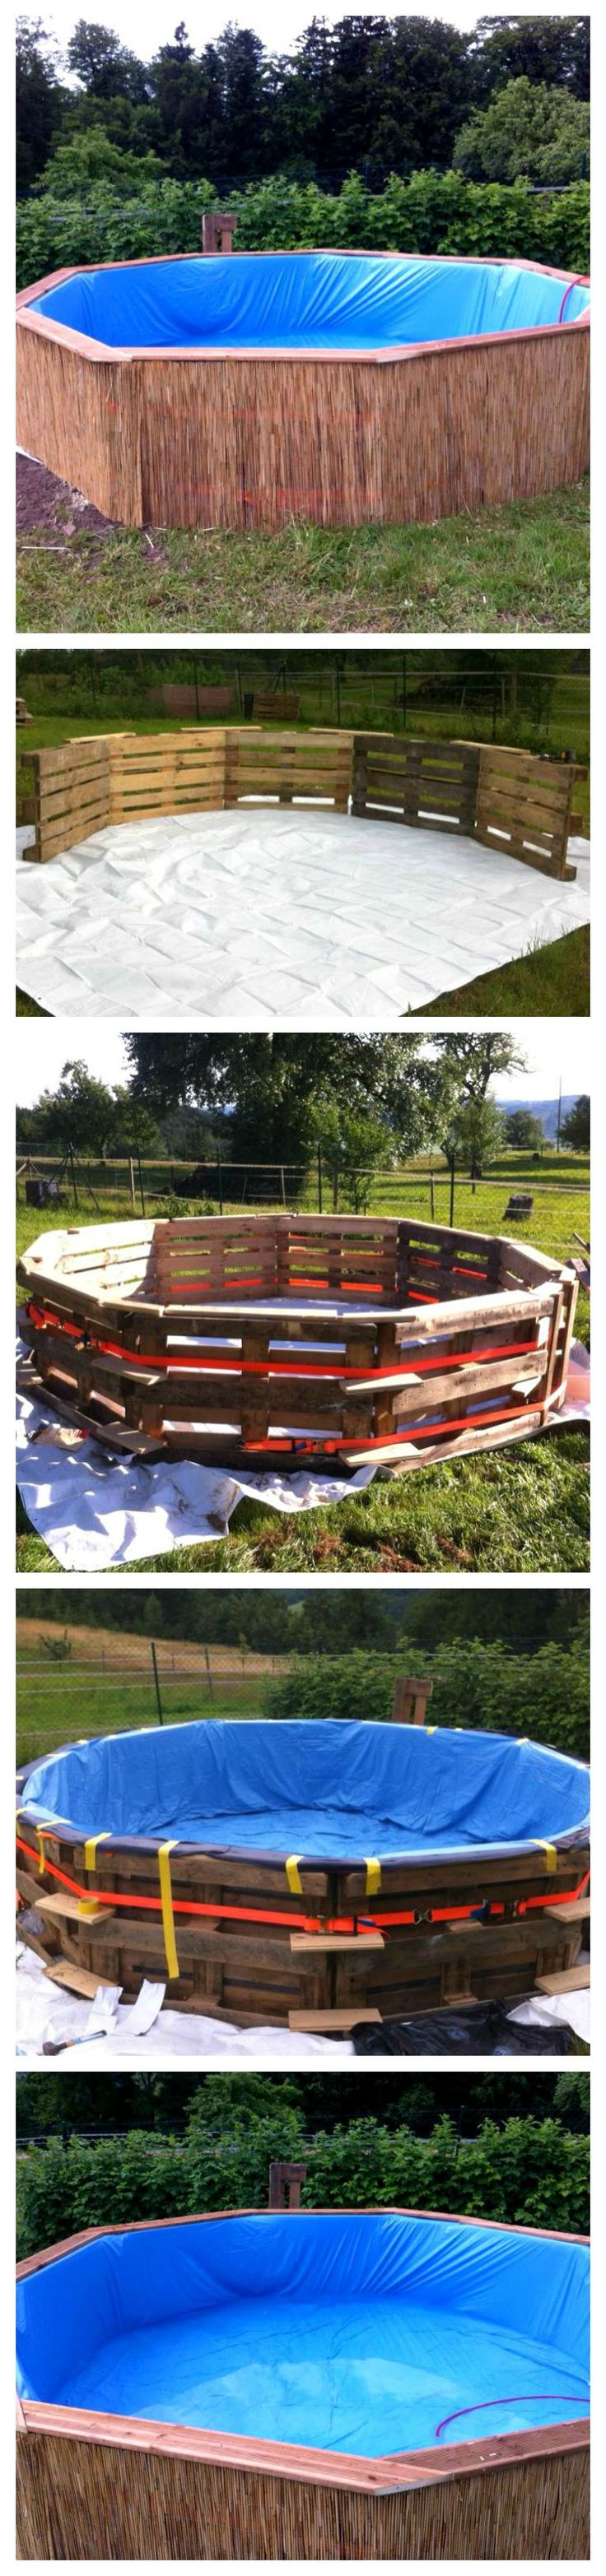 DIY Swimming Pool aus Paletten!